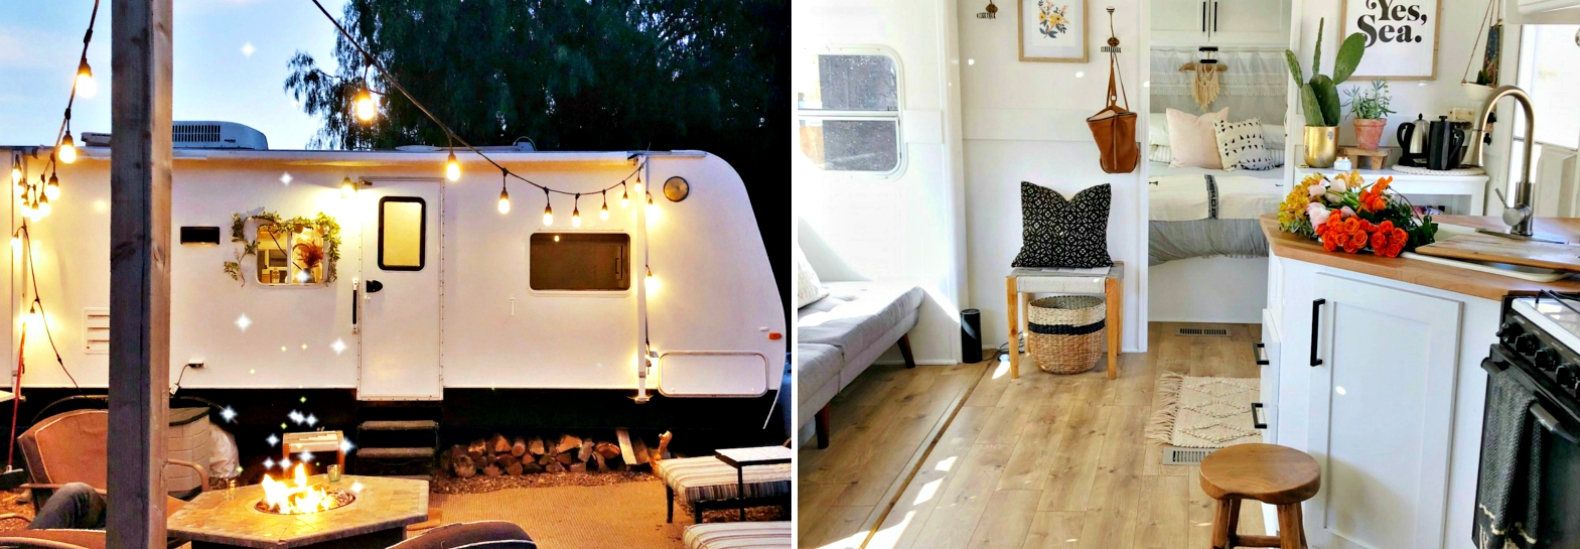 Couple Spends Just 3K To Convert An Old Camper Van Into Chic Living